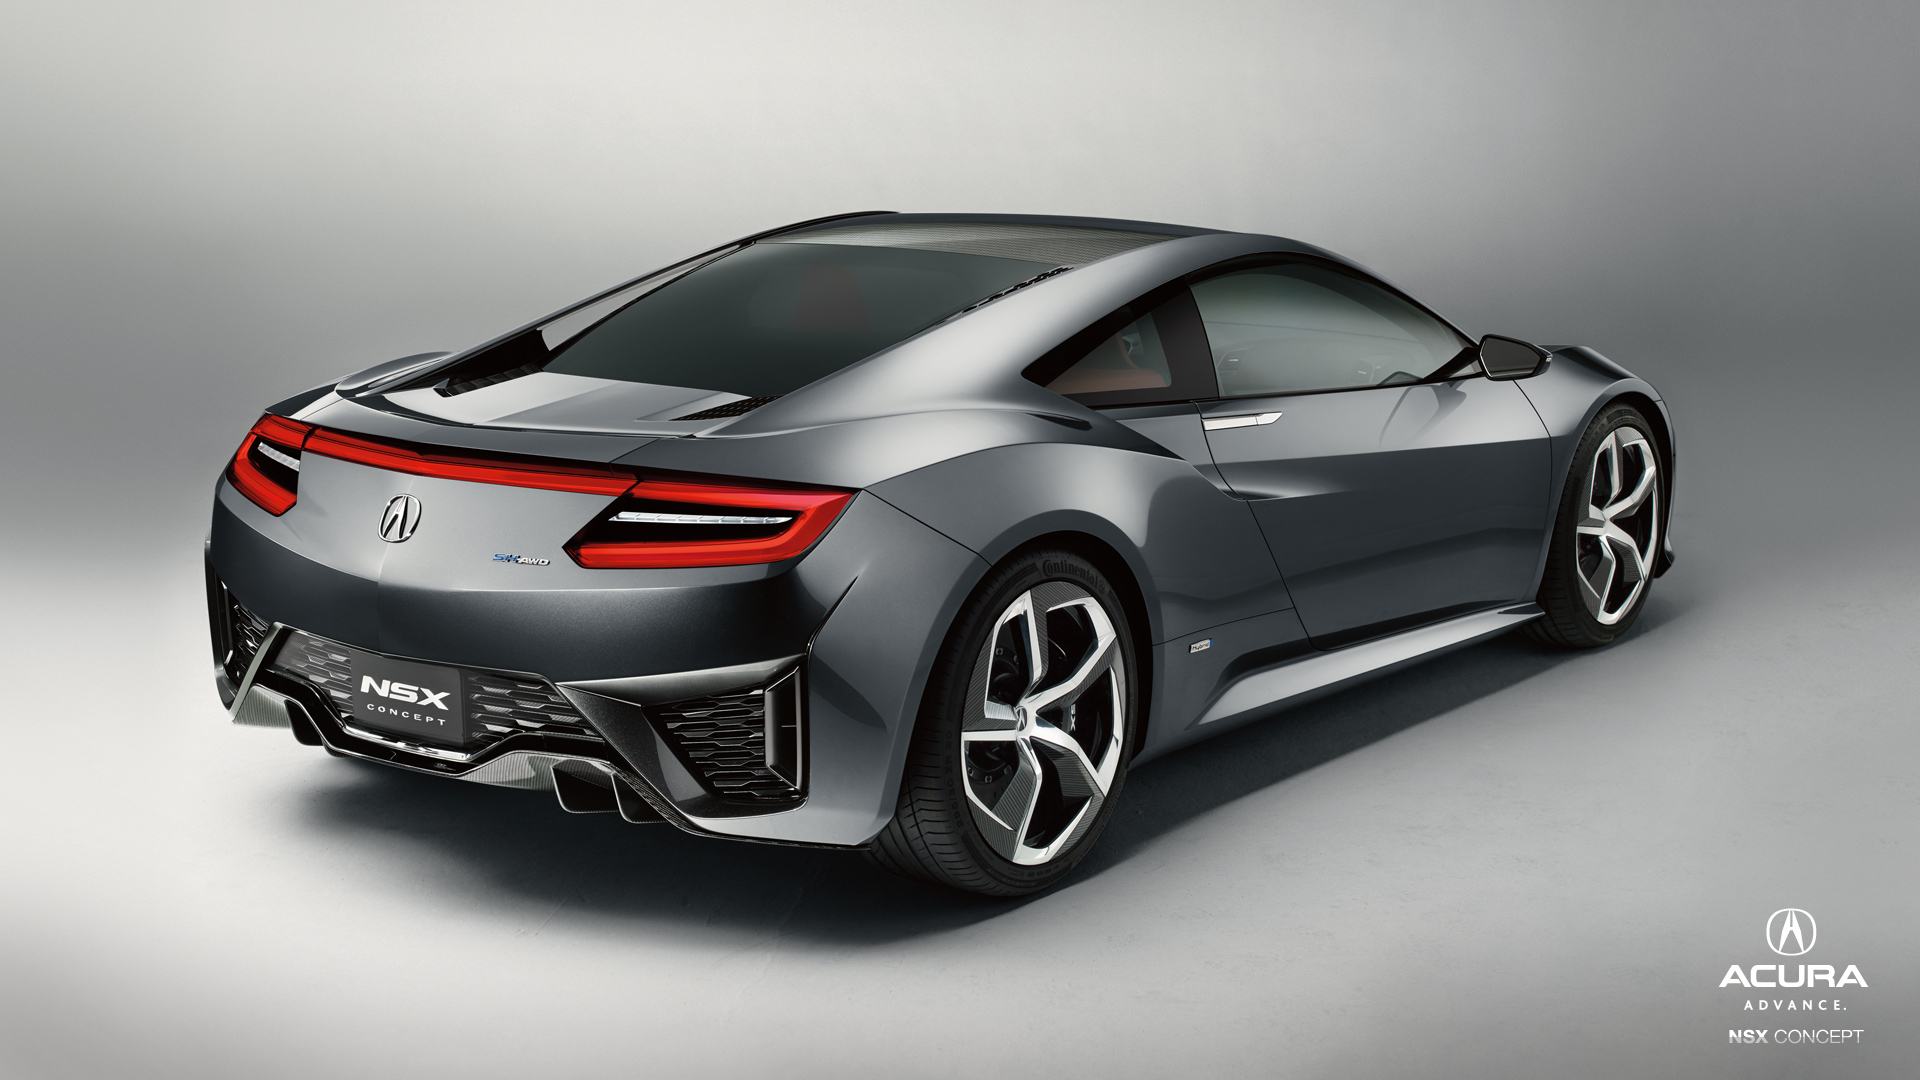 2017 Acura NSX TypeR is in the works